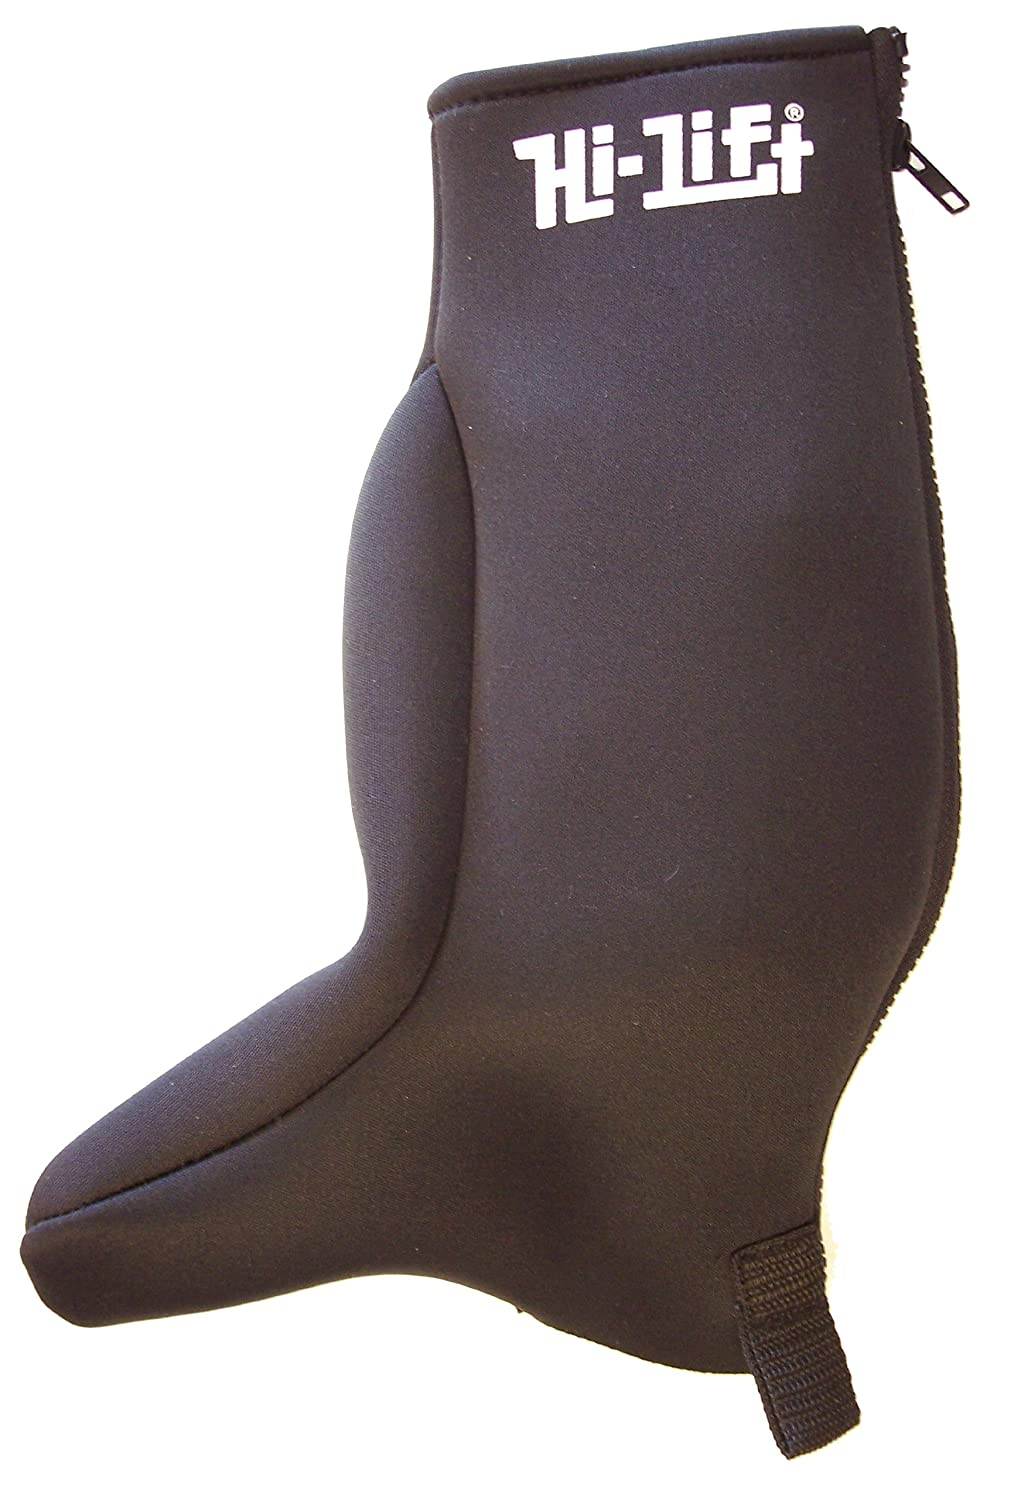 High Lift Jack Cover